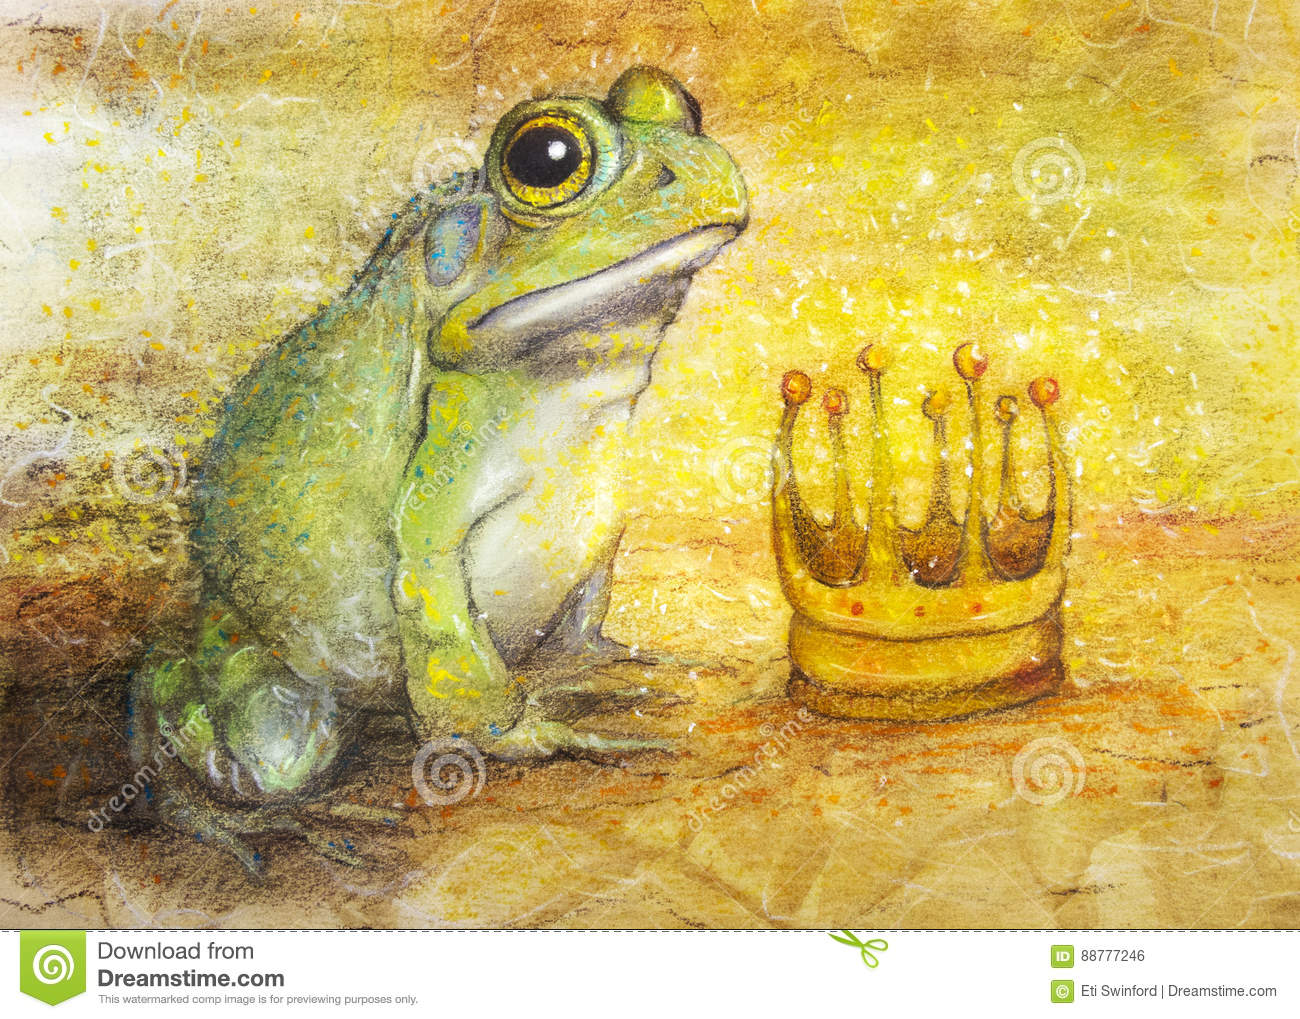 A pastel and color pencil art drawing of a large fat toad or frog looking at a crown reluctantly an abstract concept of a prince that is a frog and with